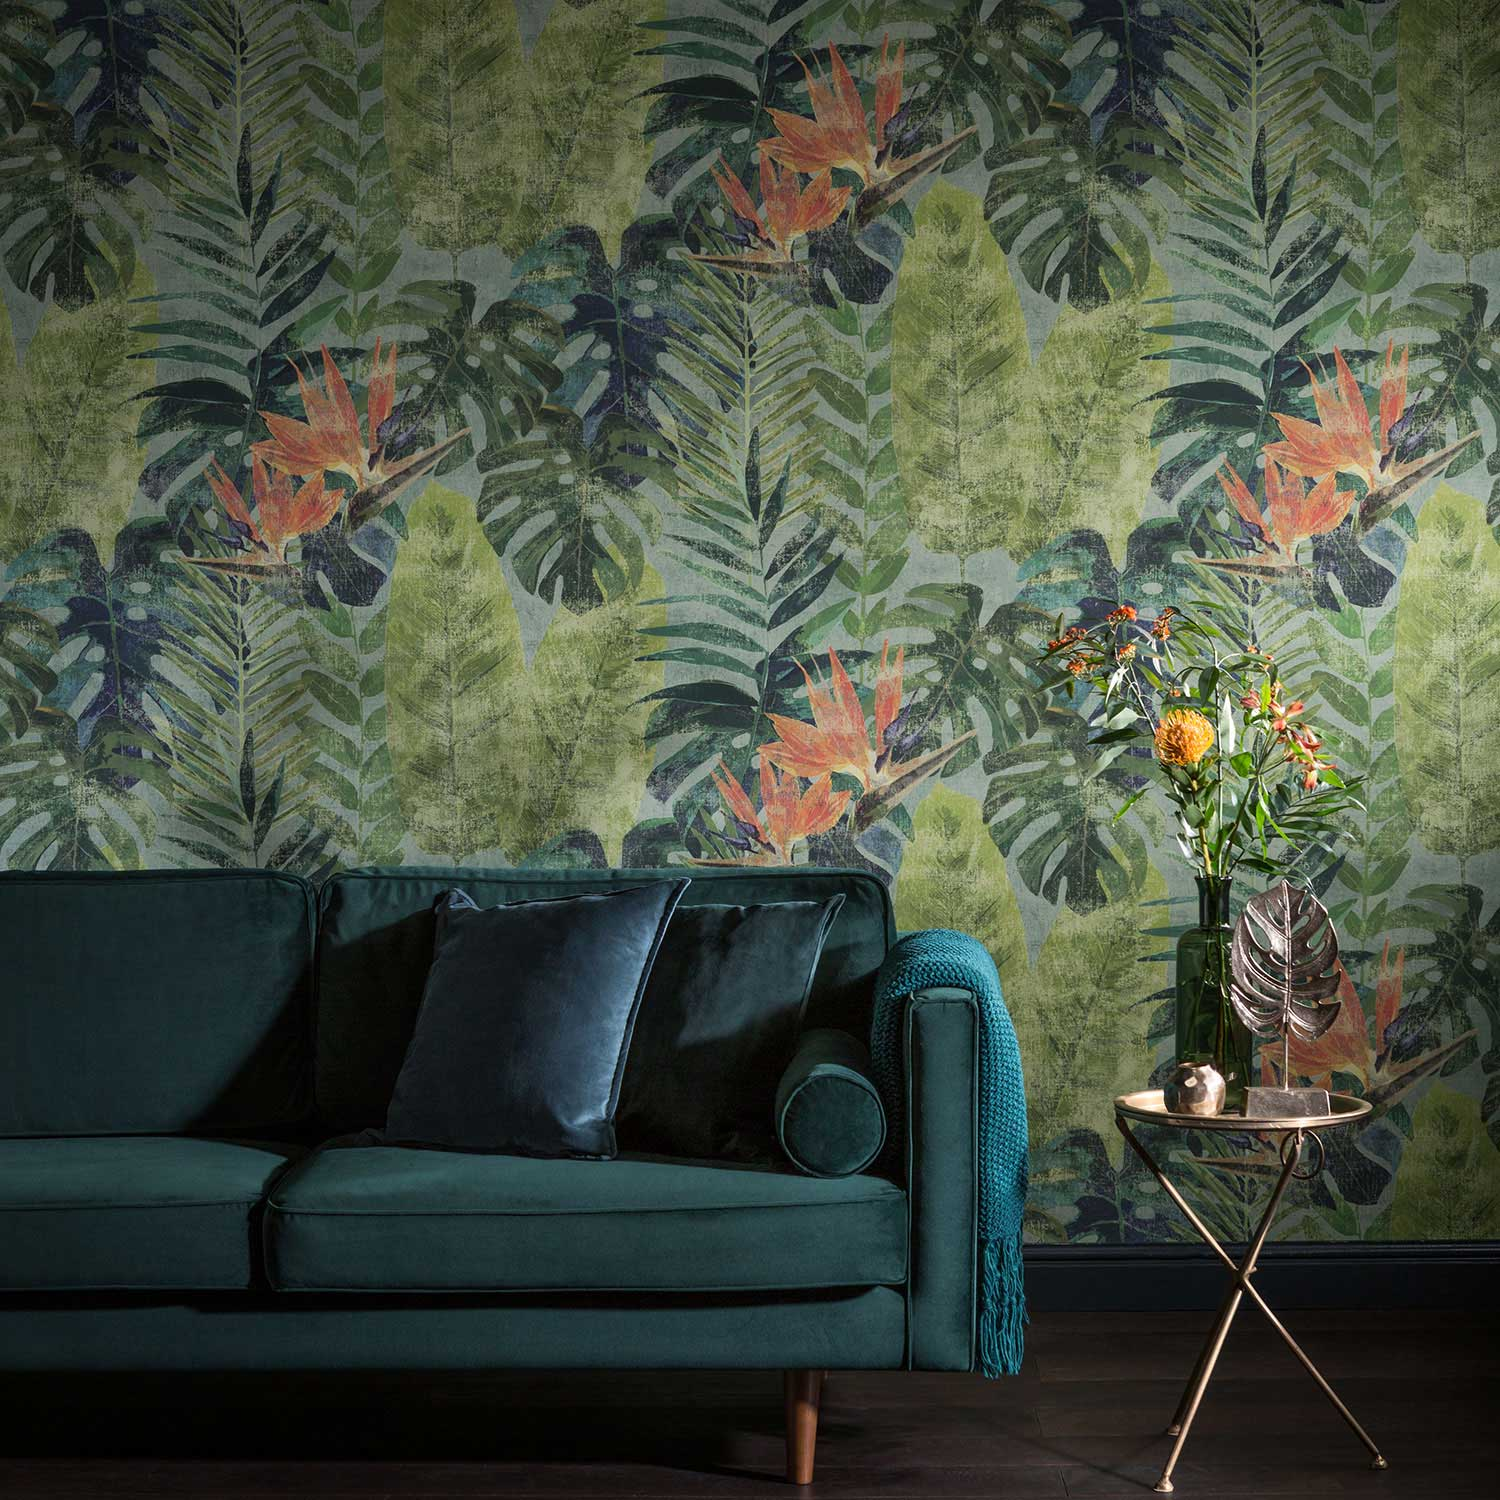 Amazonas Mural - Green - by Galerie